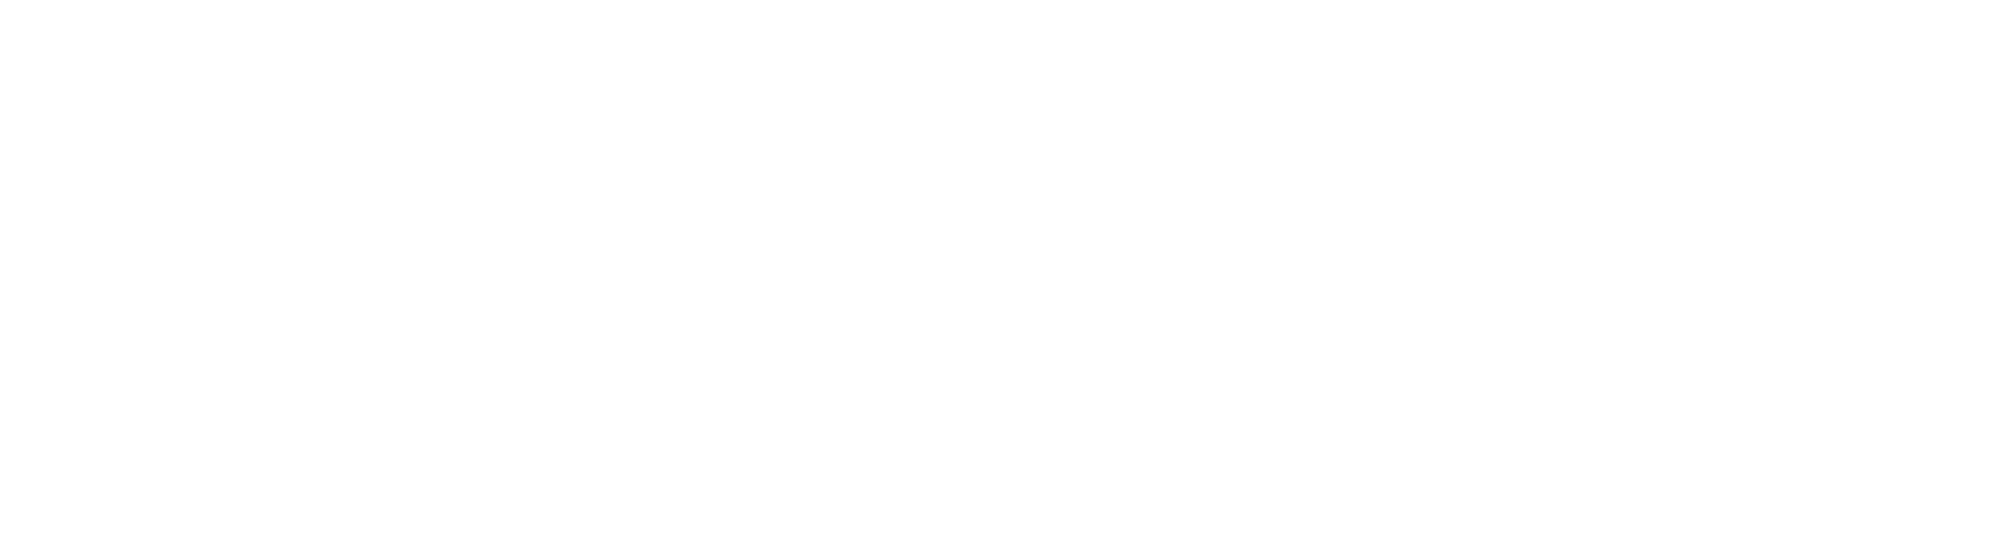 News Integrity Initiative